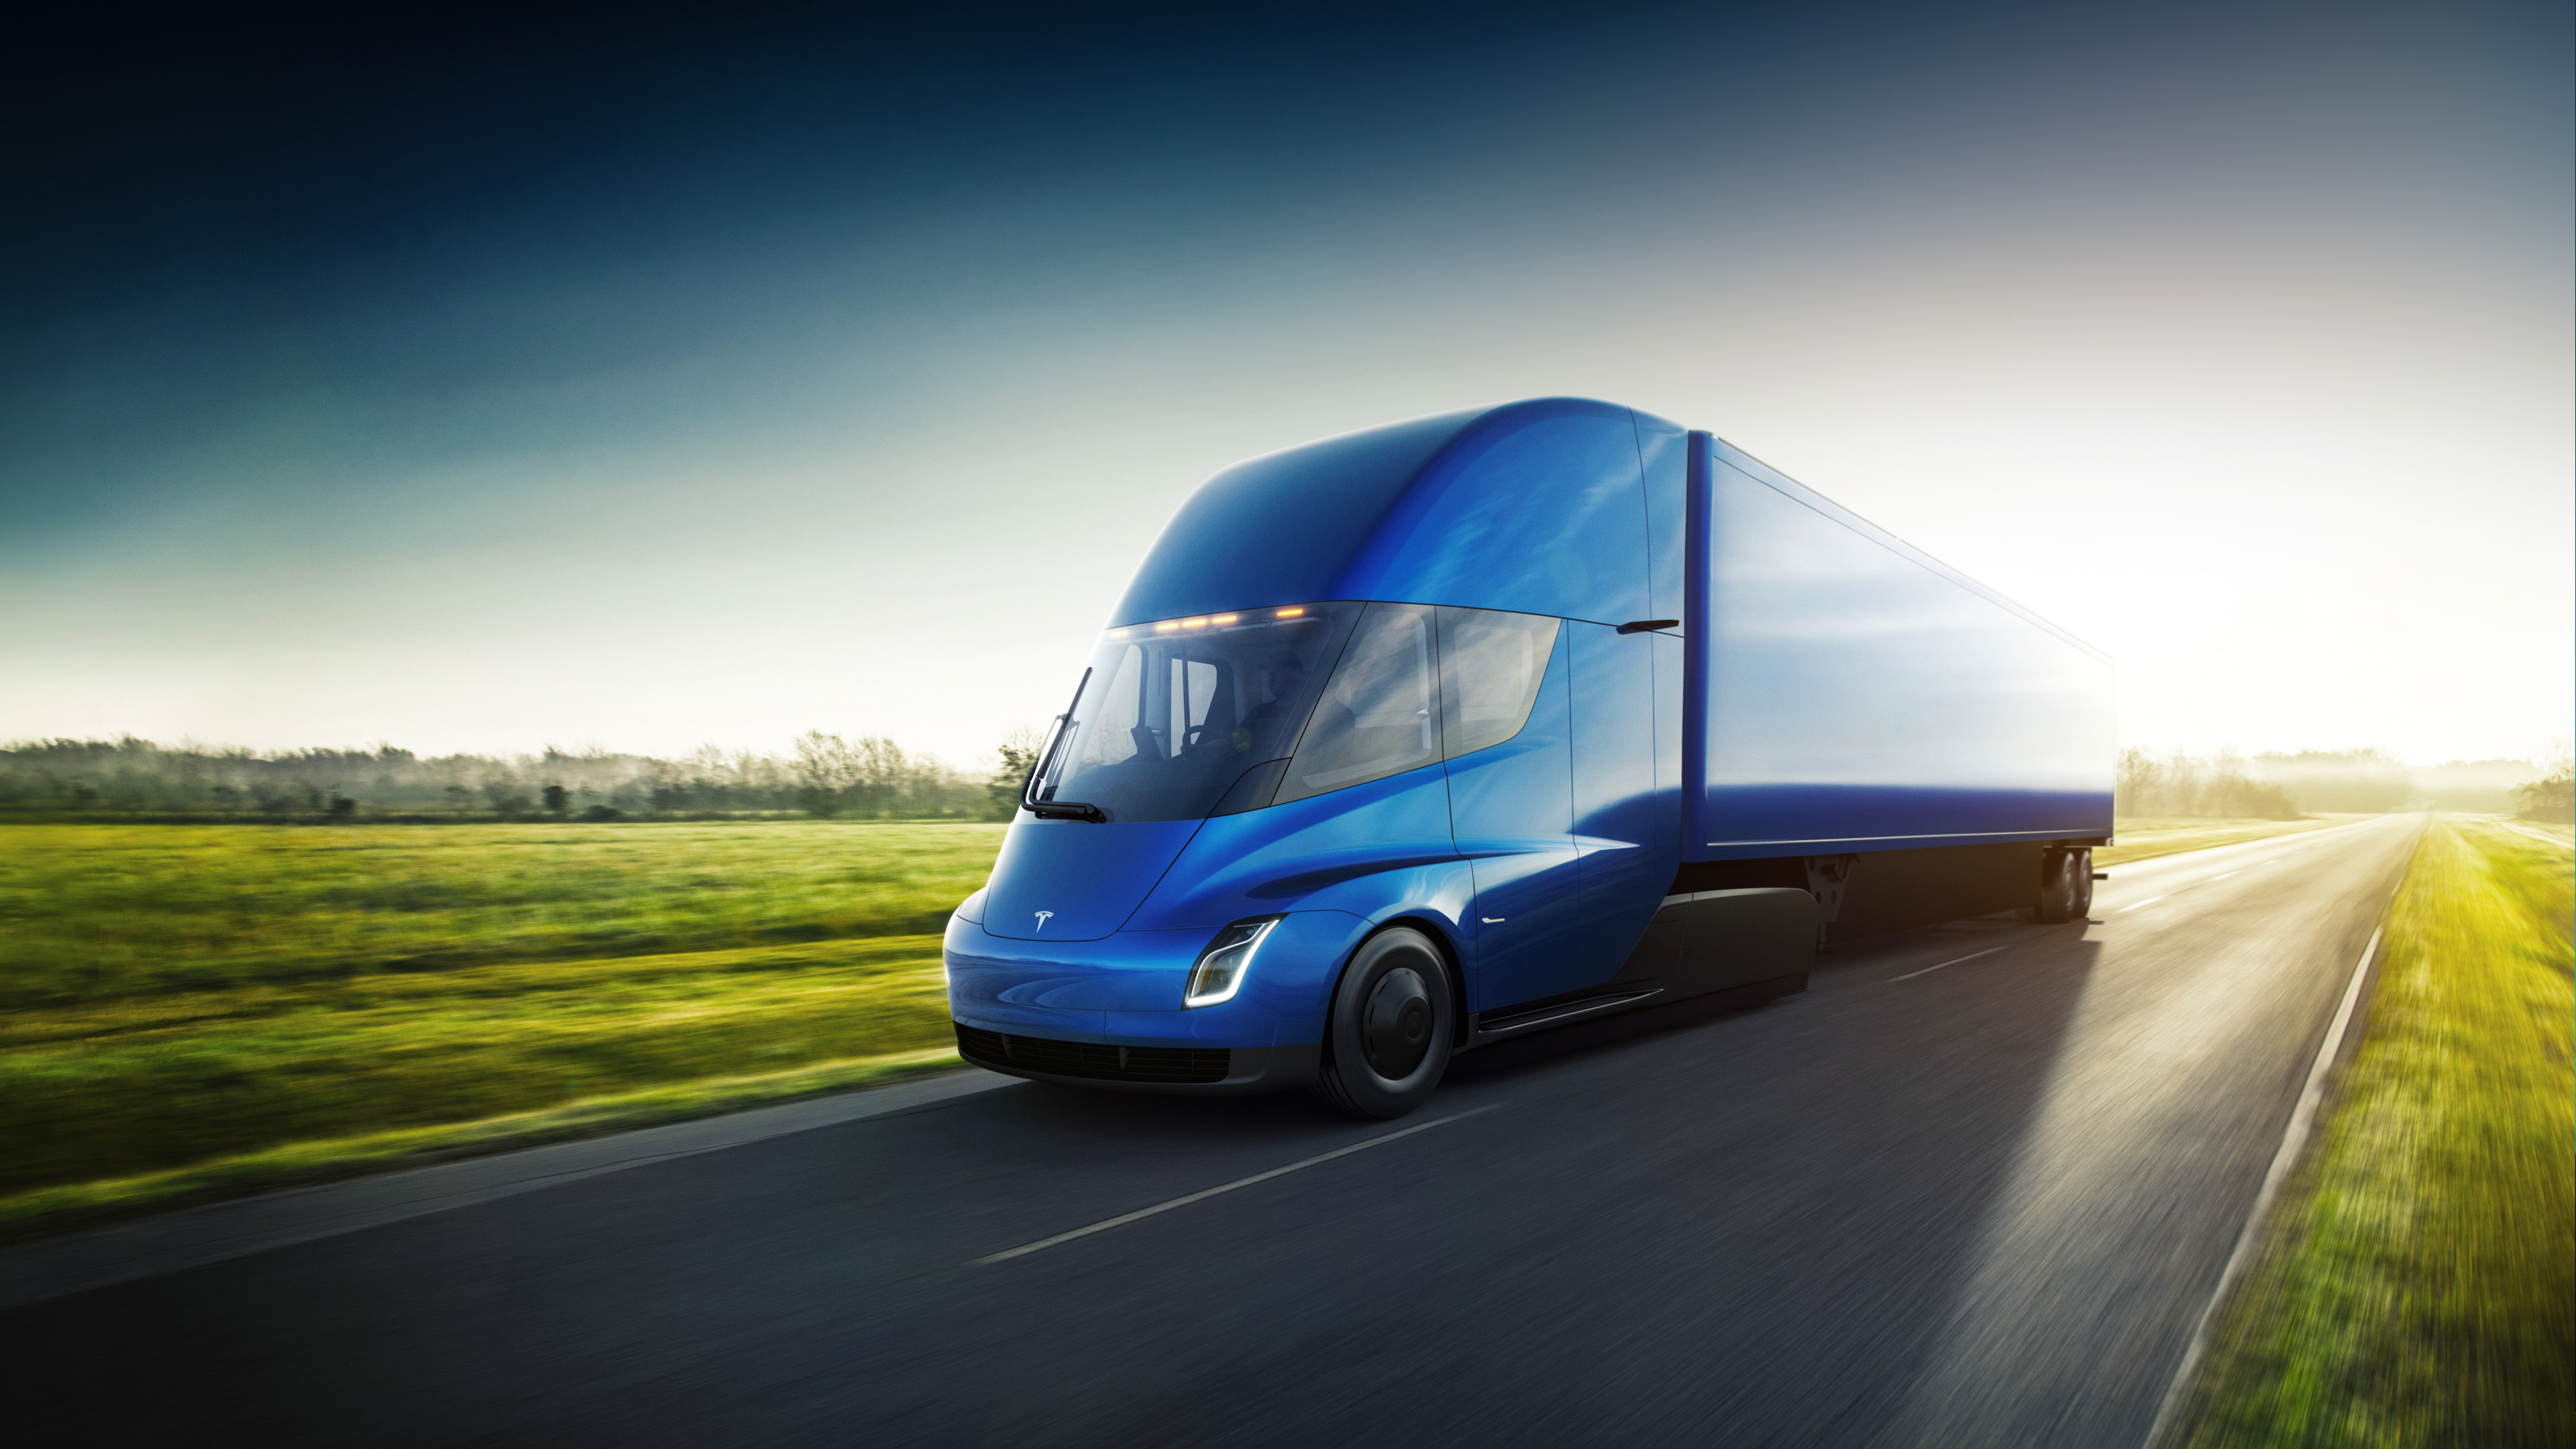 This Is The Tesla Semi Truck The Verge